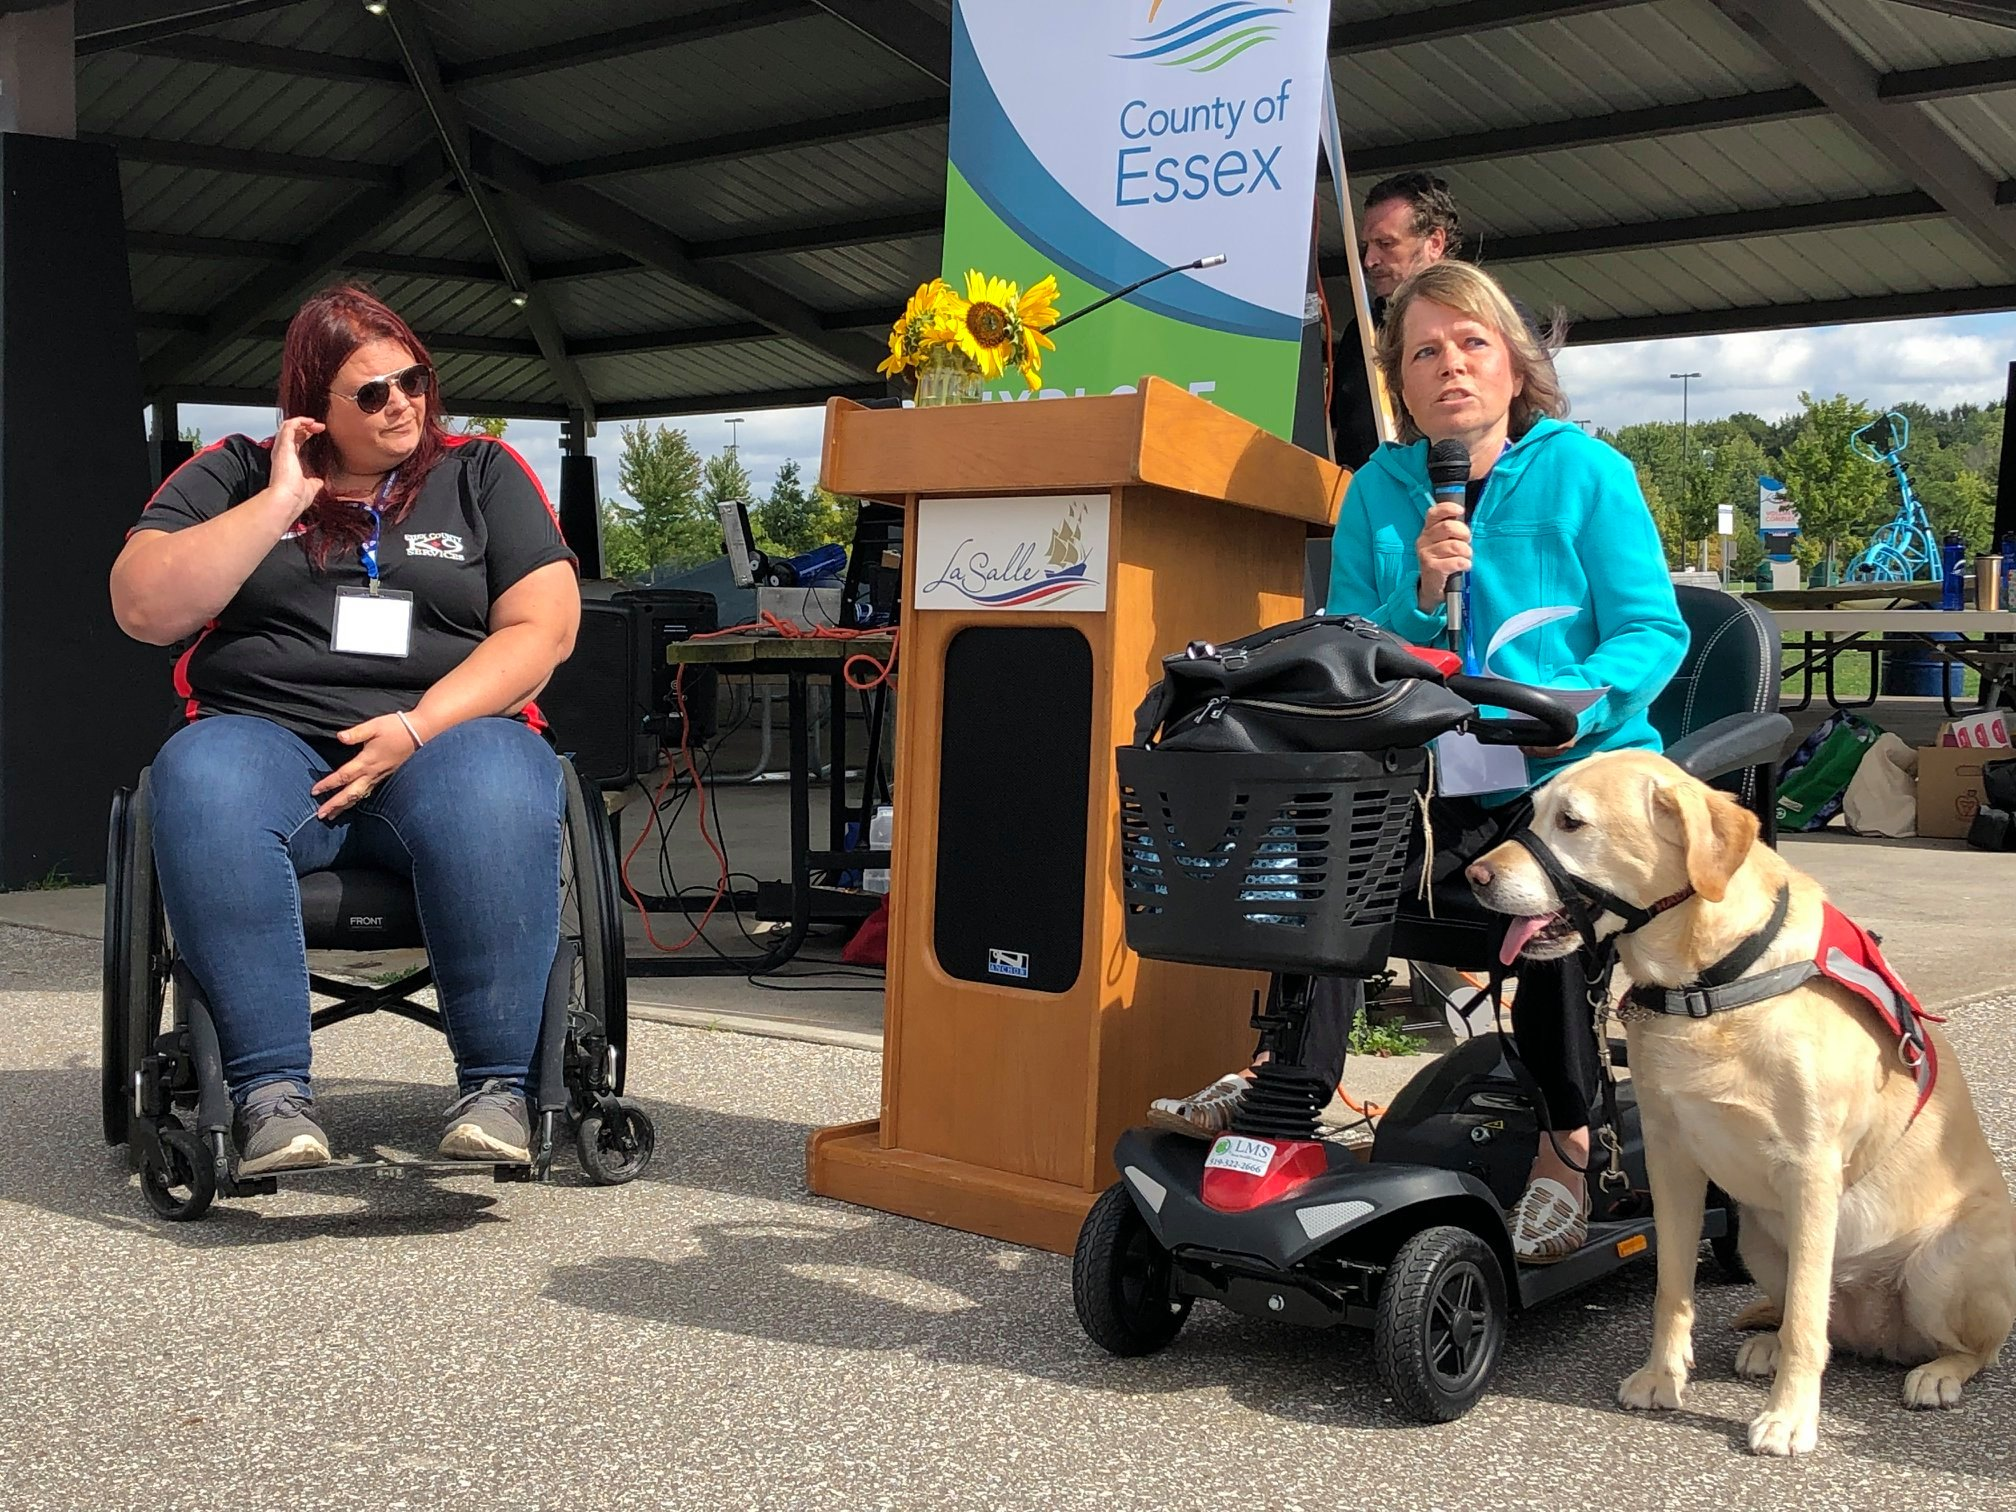 Christine Easterbrook speaks at the 2nd Annual Accessibility Awareness Walk in the Town of LaSalle.